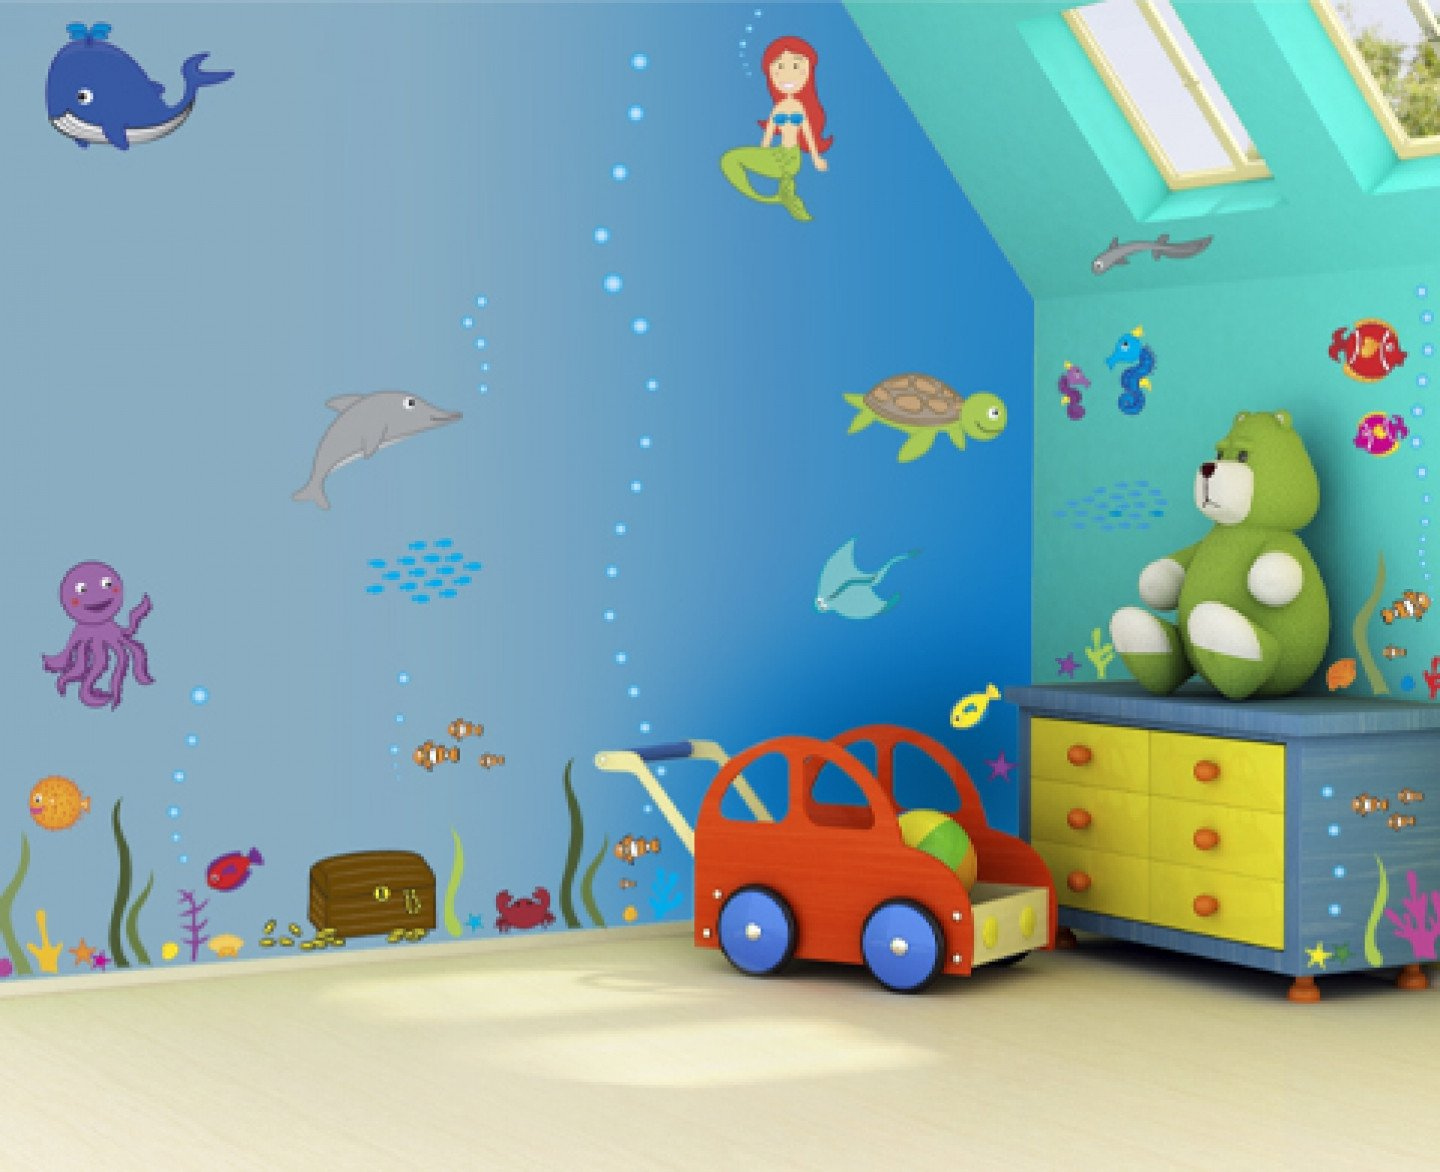 Wall Decor for Kids Room Fresh Wall Art Décor Ideas for Kids Room